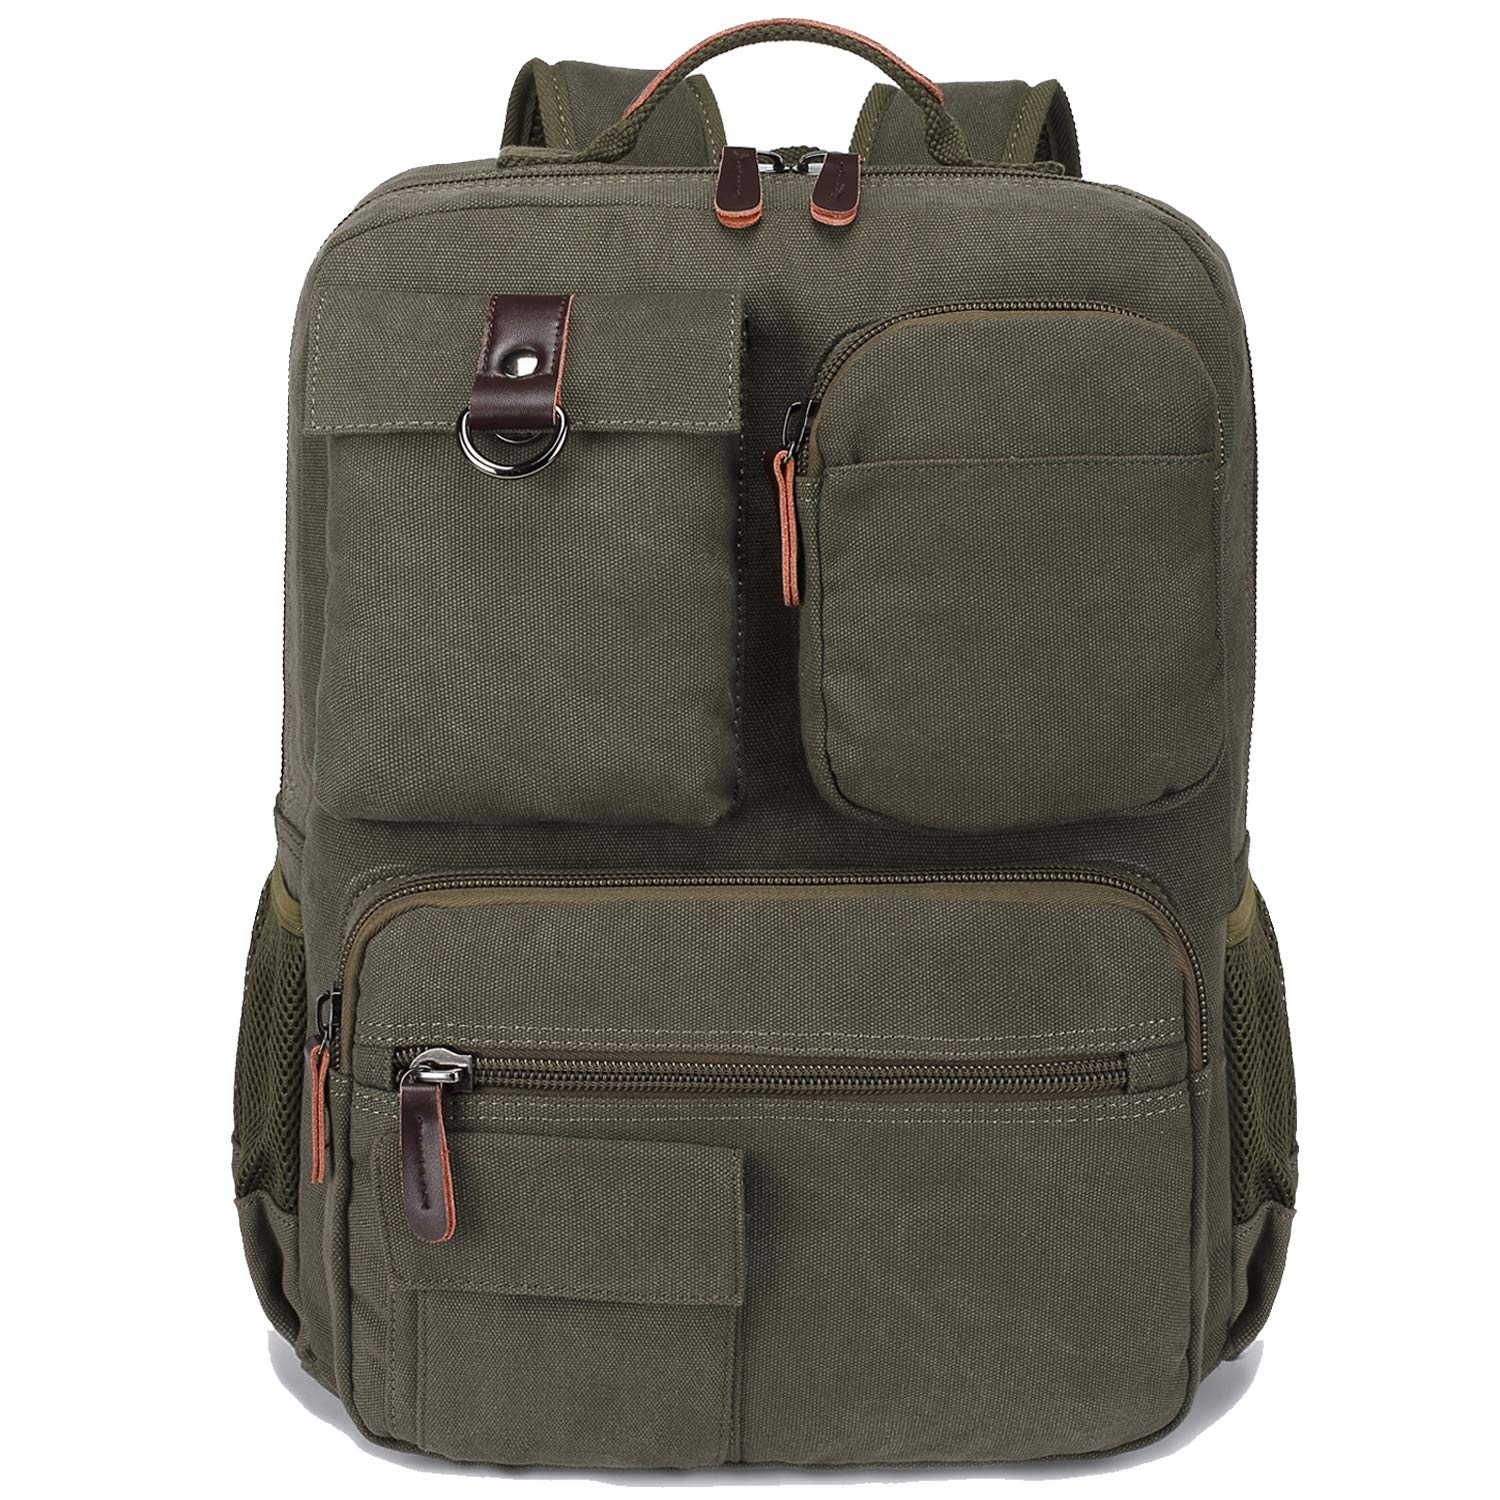 School Backpack Vintage Canvas Laptop Backpacks Men Women Rucksack Bookbags (Army Green)